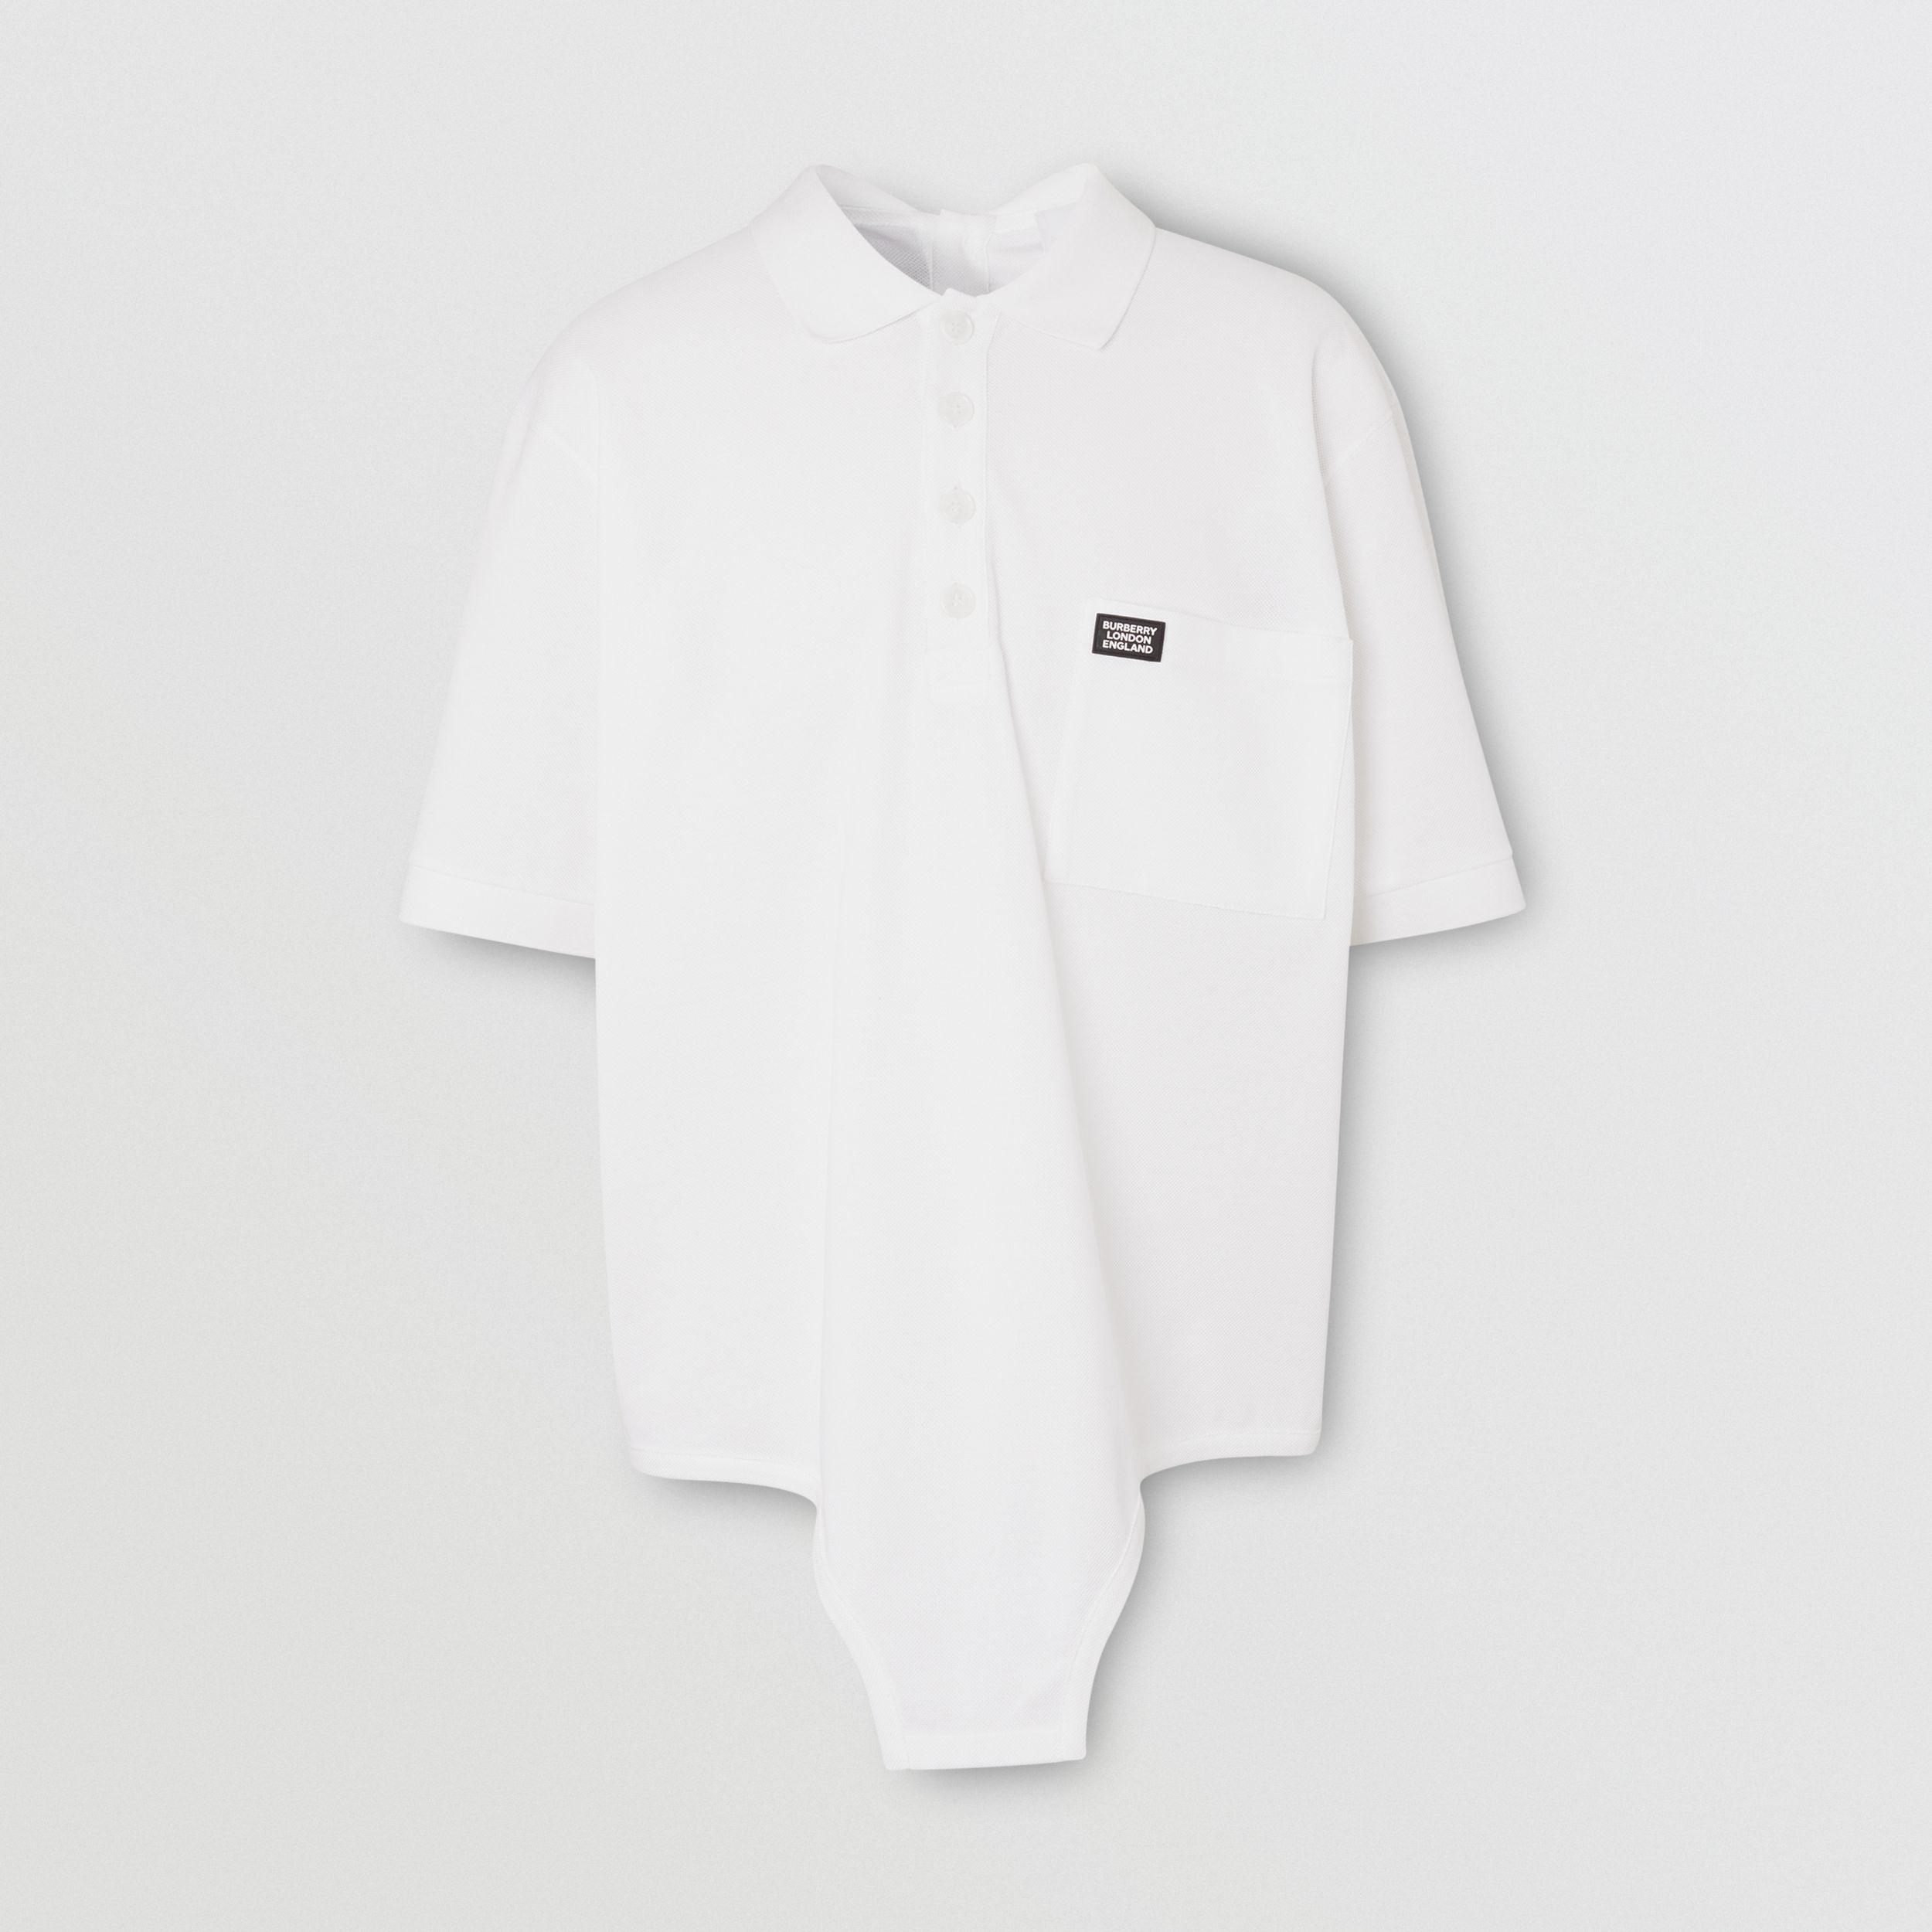 Cut-out Hem Cotton Reconstructed Polo Shirt in Optic White - Men | Burberry Hong Kong S.A.R. - 4